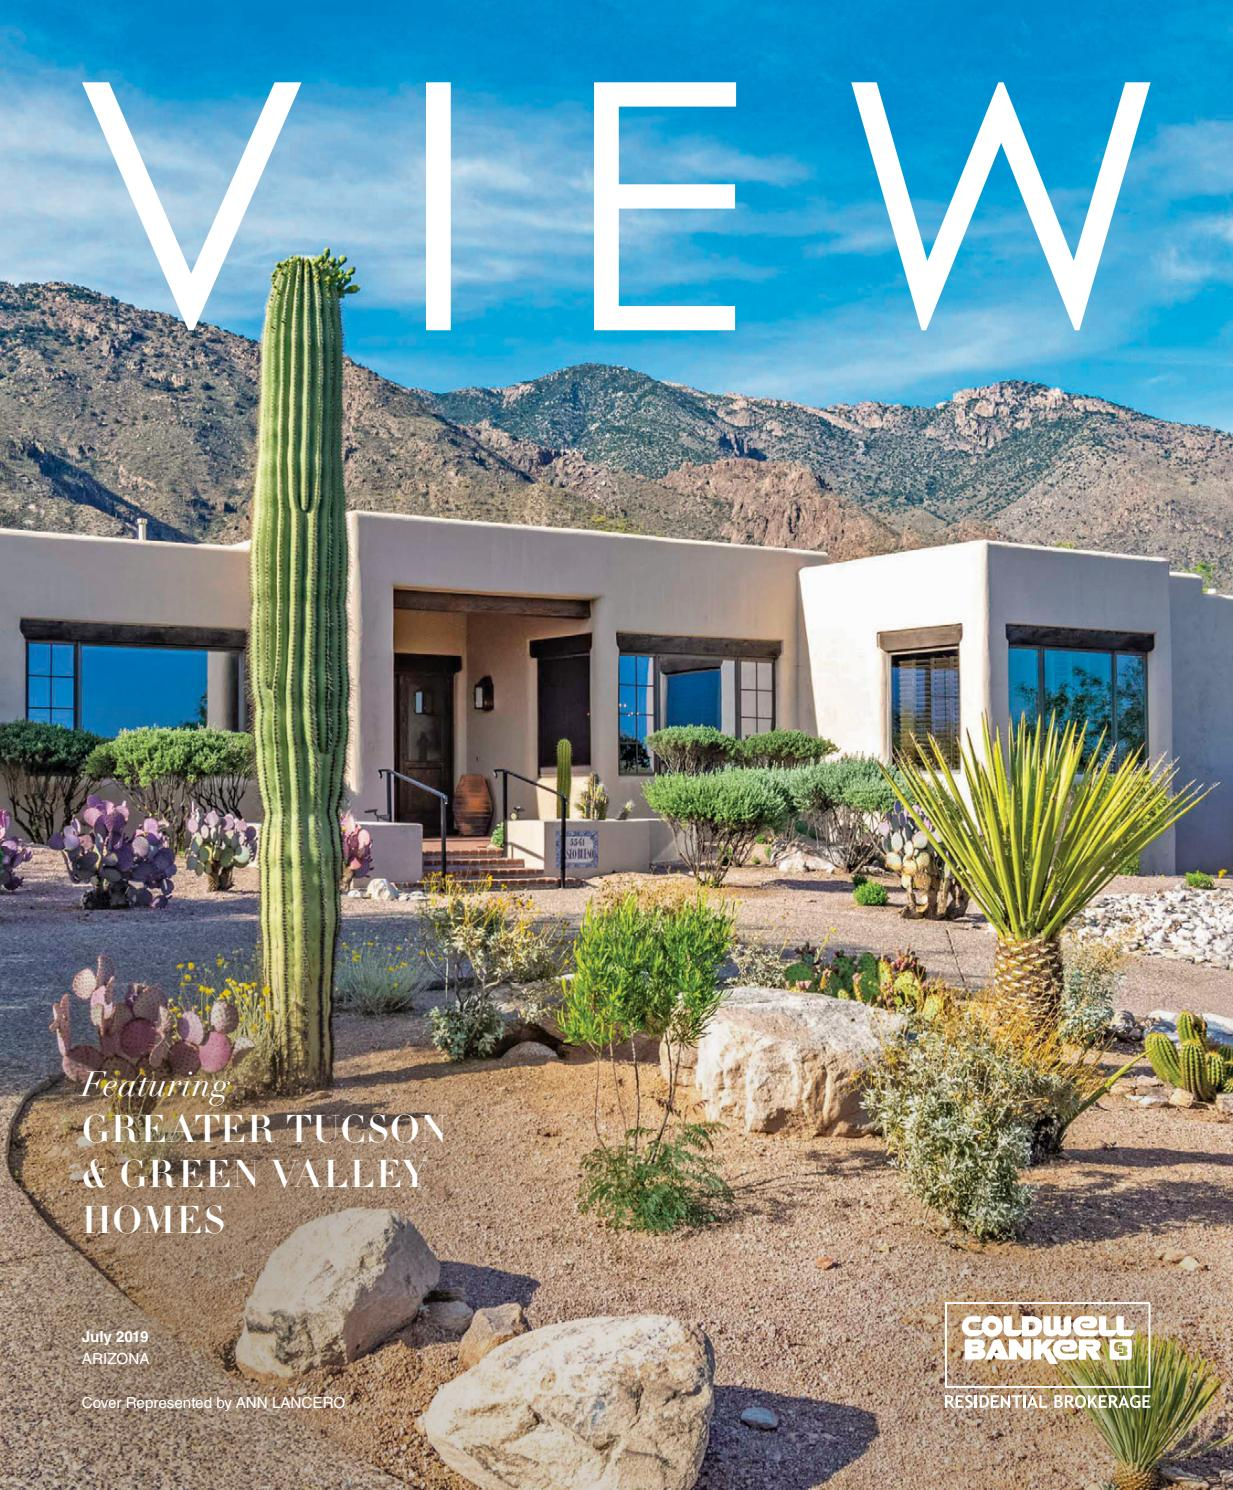 View - Arizona: Tucson & Green Valley Edition by Coldwell